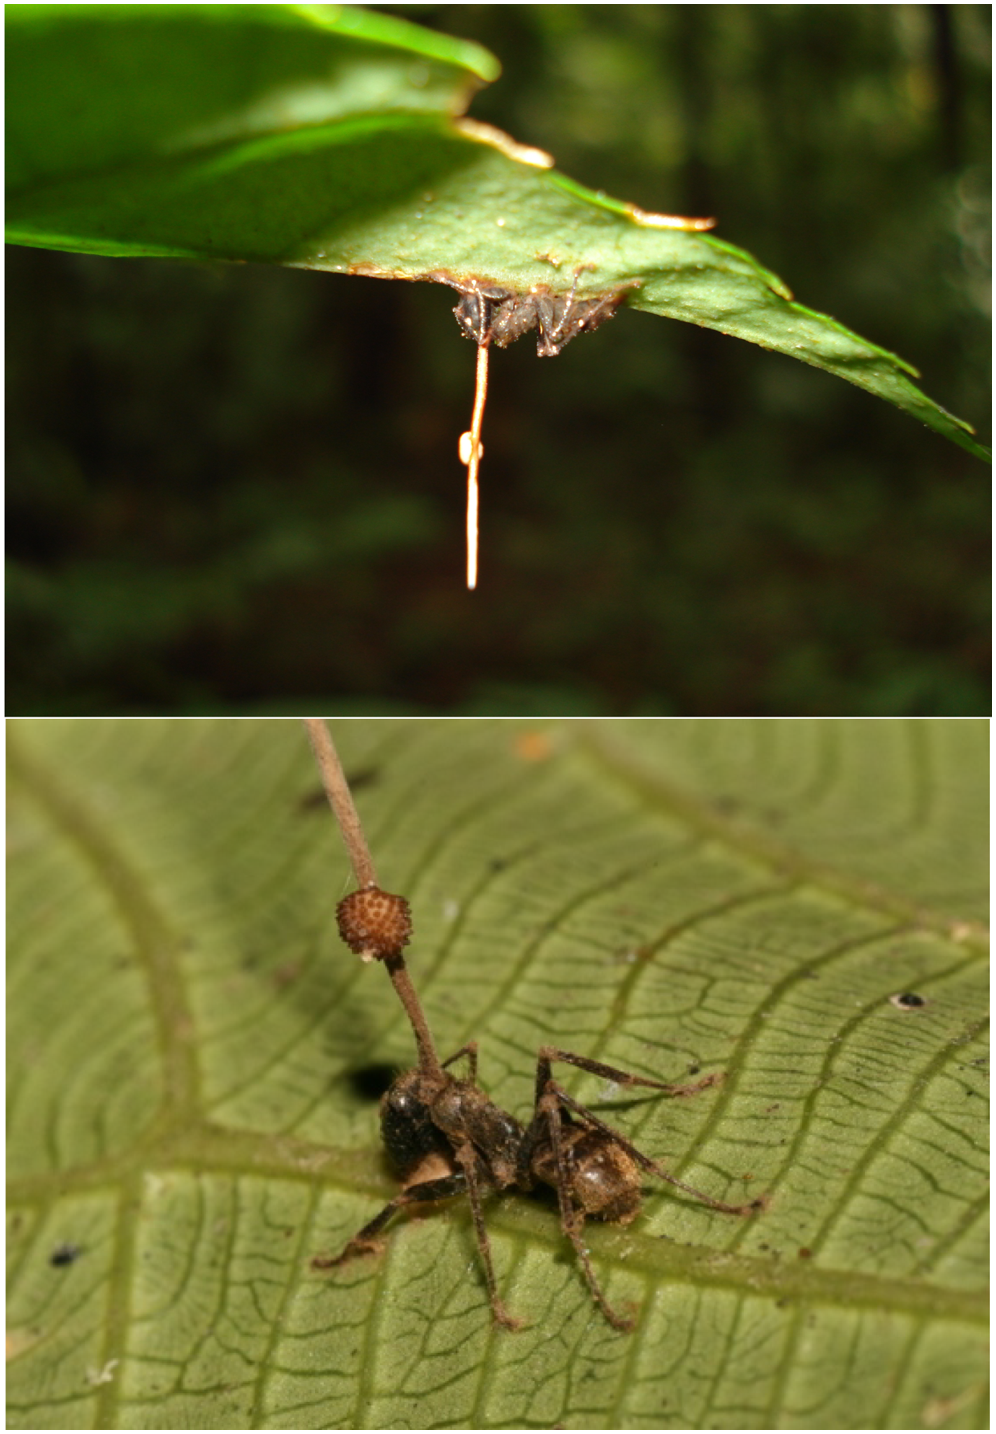 Ophiocordyceps unilateralis - Wikipedia